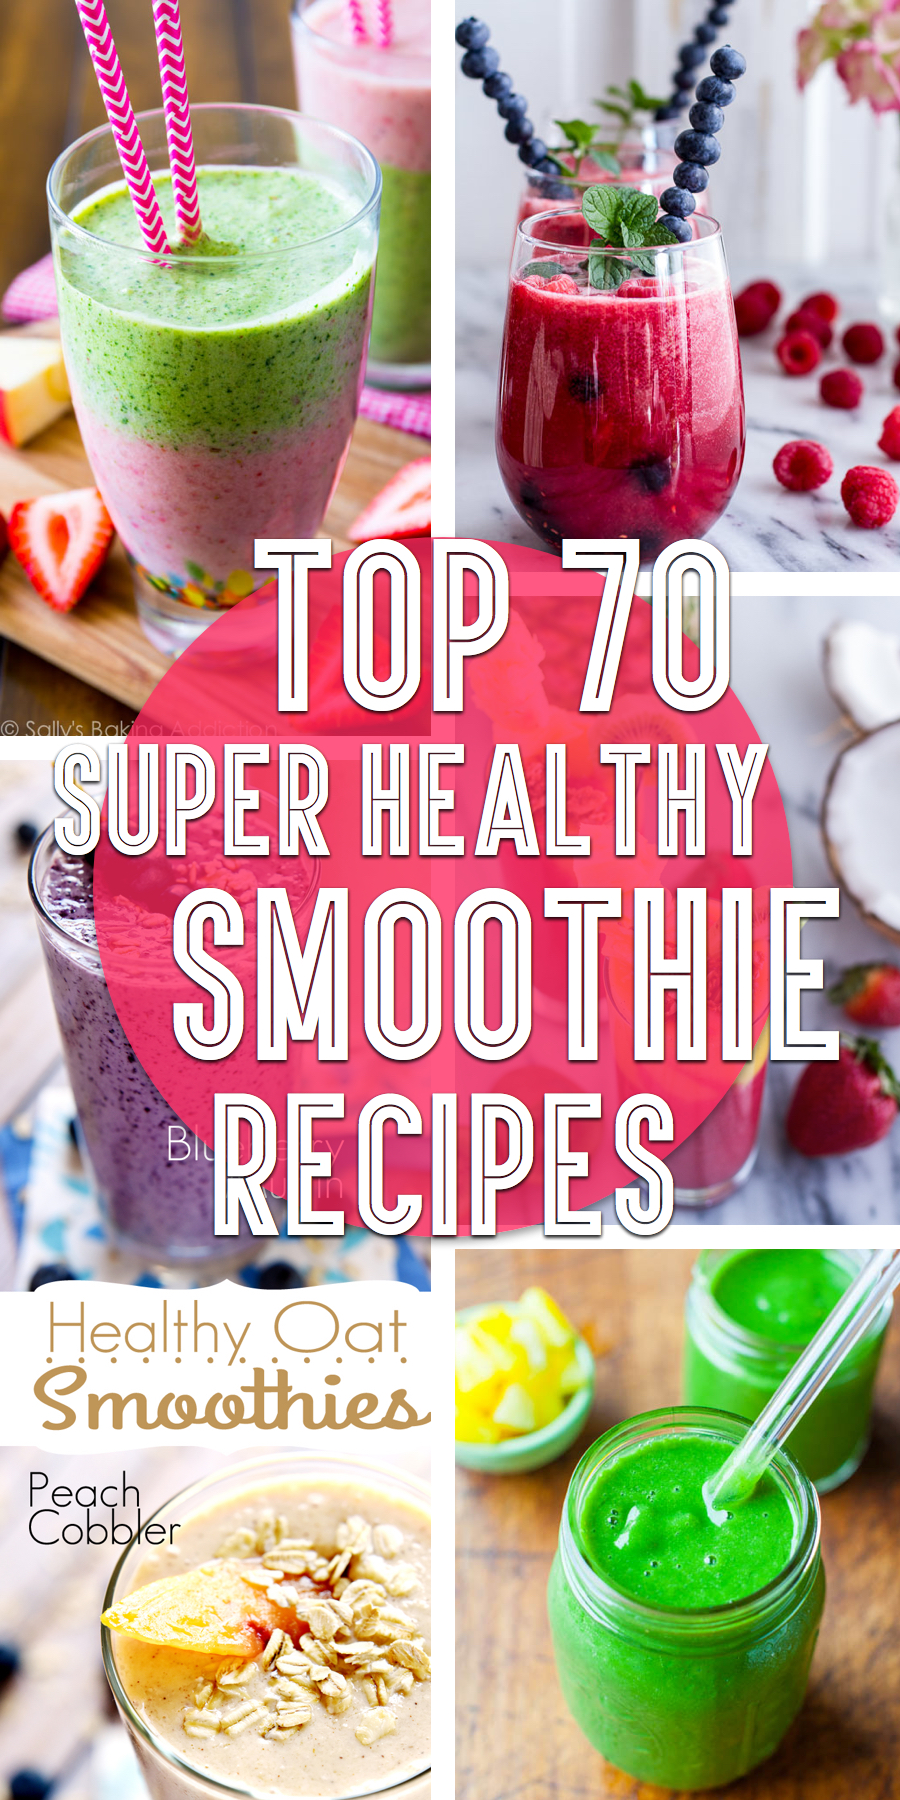 Top 70 Delicious And Super Healthy Smoothie Recipes For The Whole ...